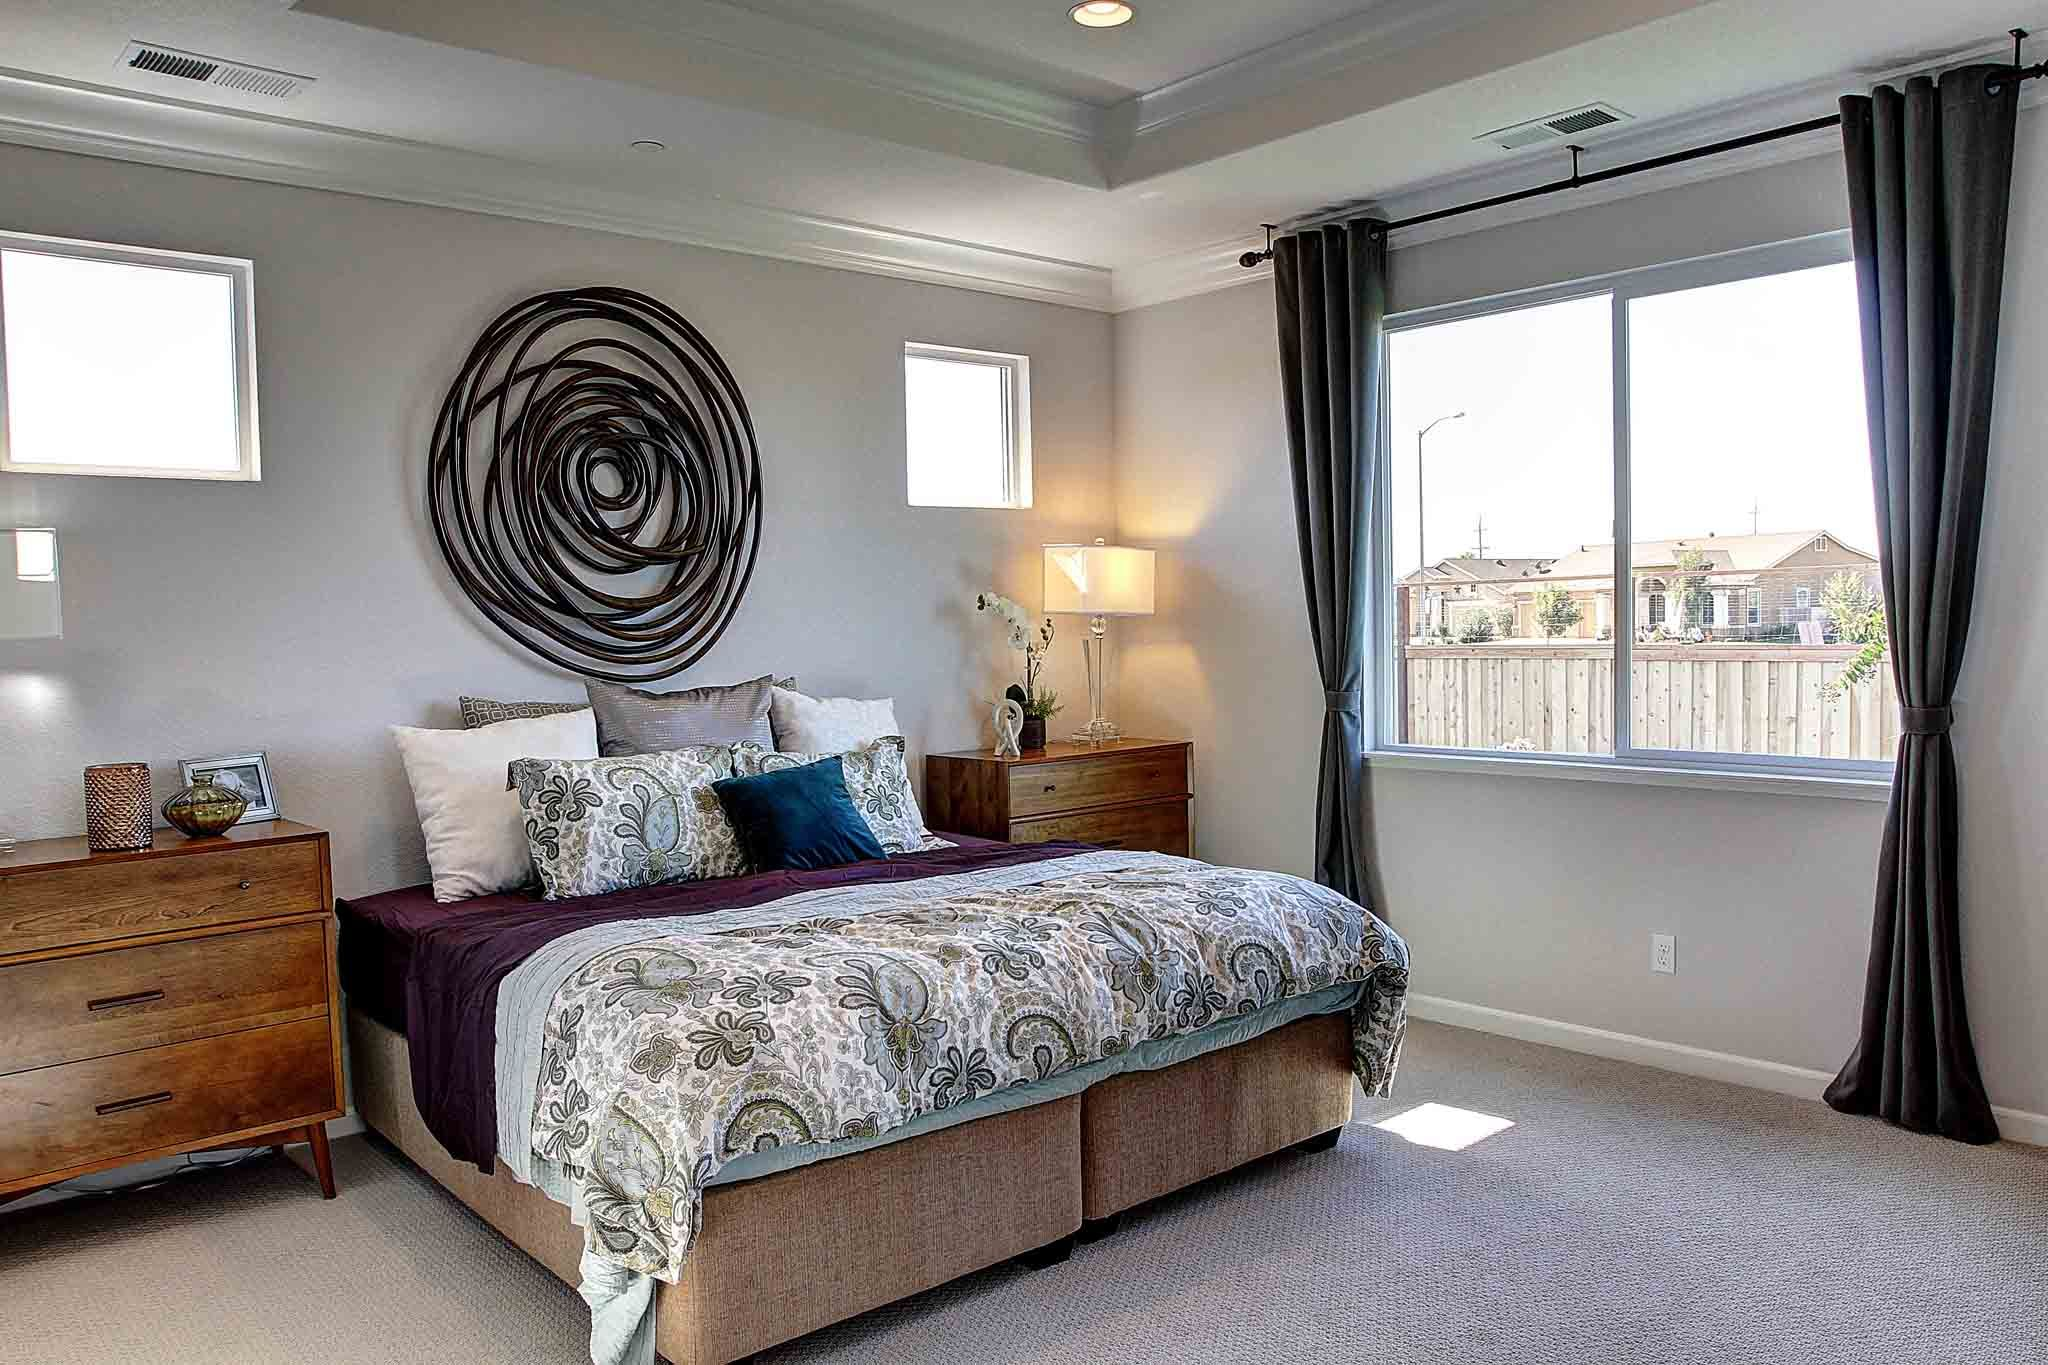 Bedroom featured in the Hudson By Discovery Homes in Chico, CA